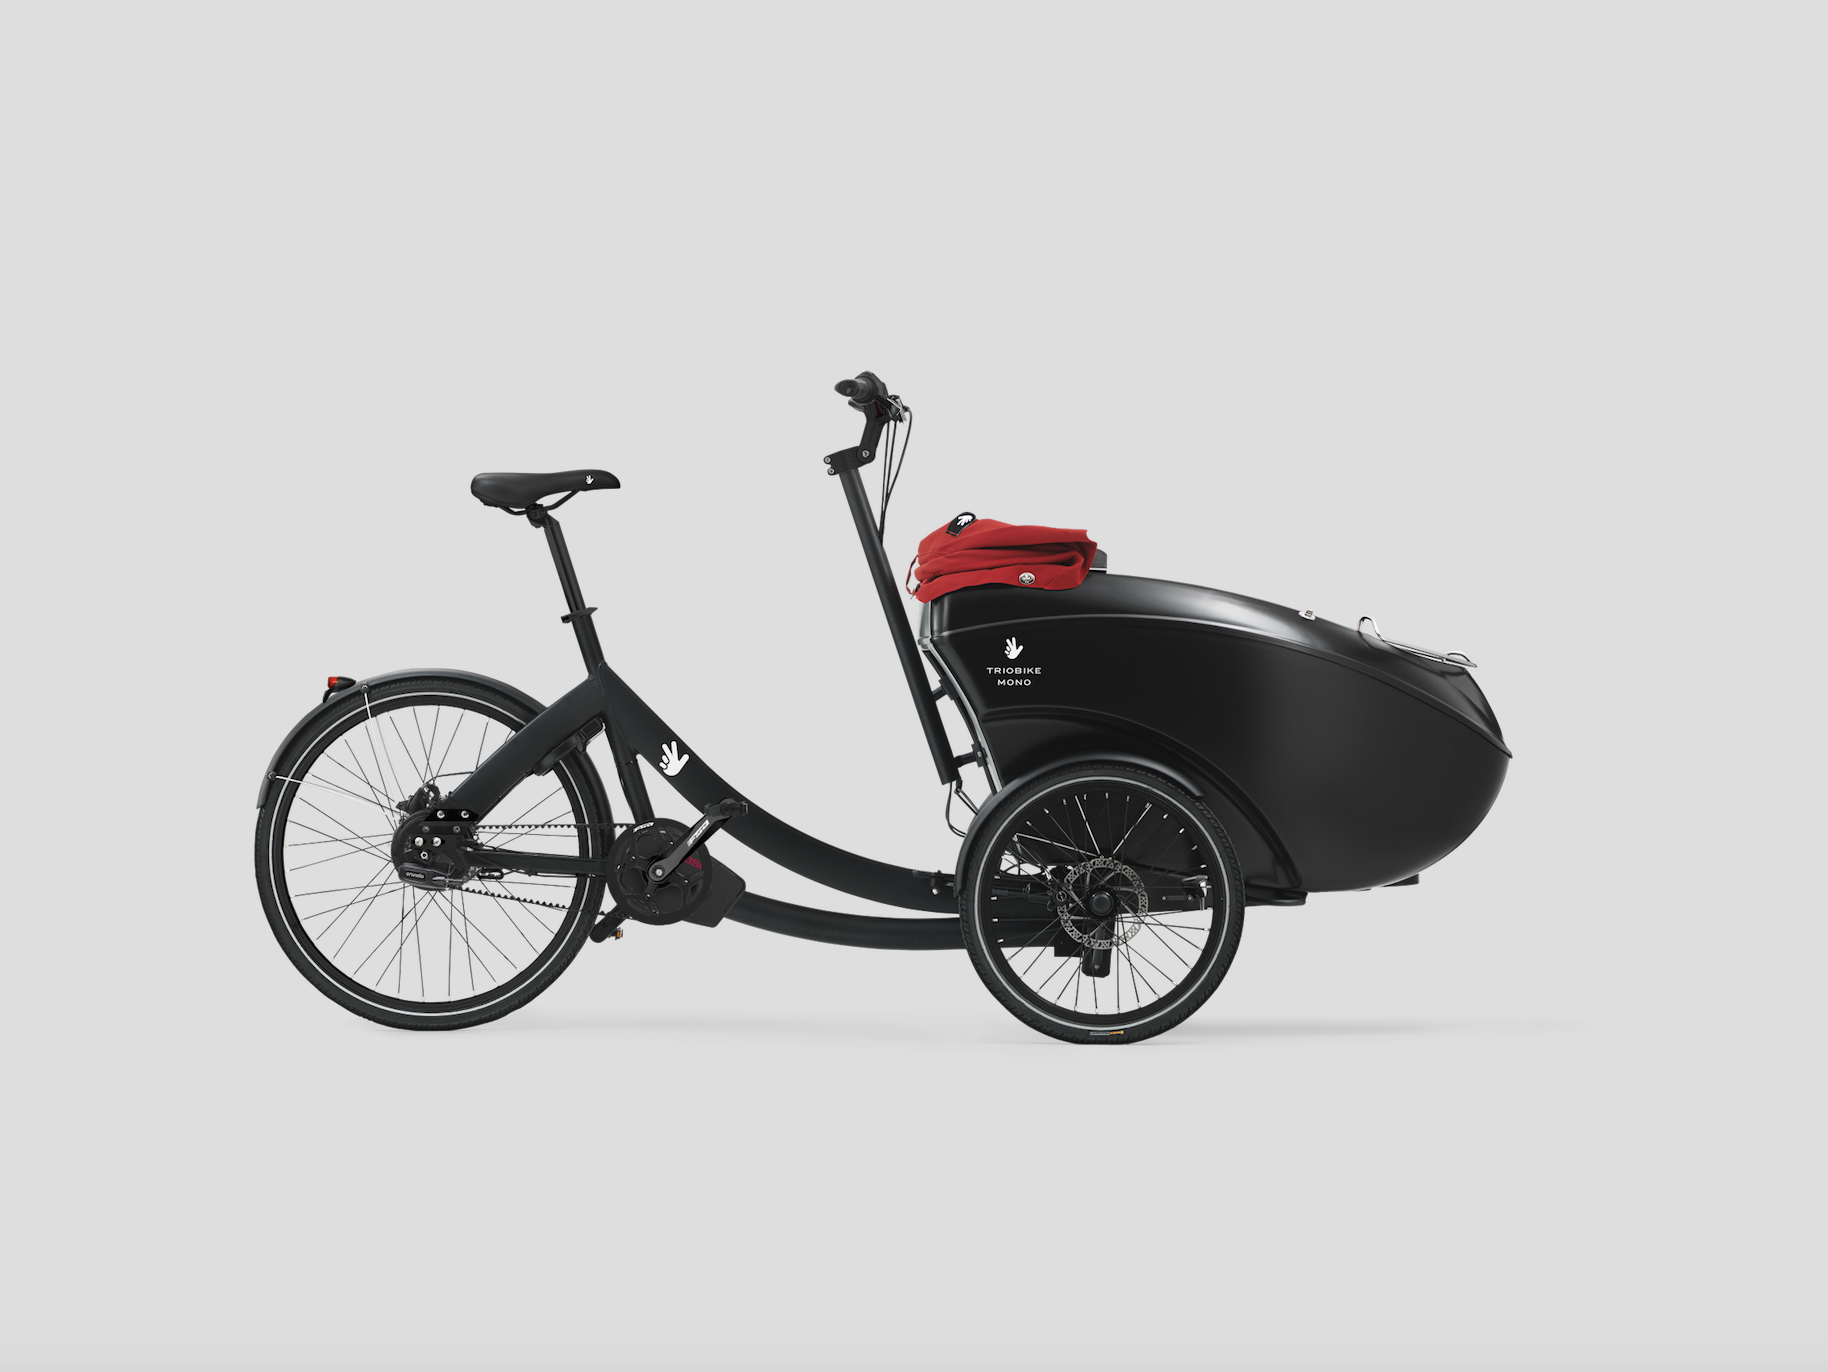 Triobike Mono - E Brose Mid Drive - Pre Order Now! Late August 2019 Arrival